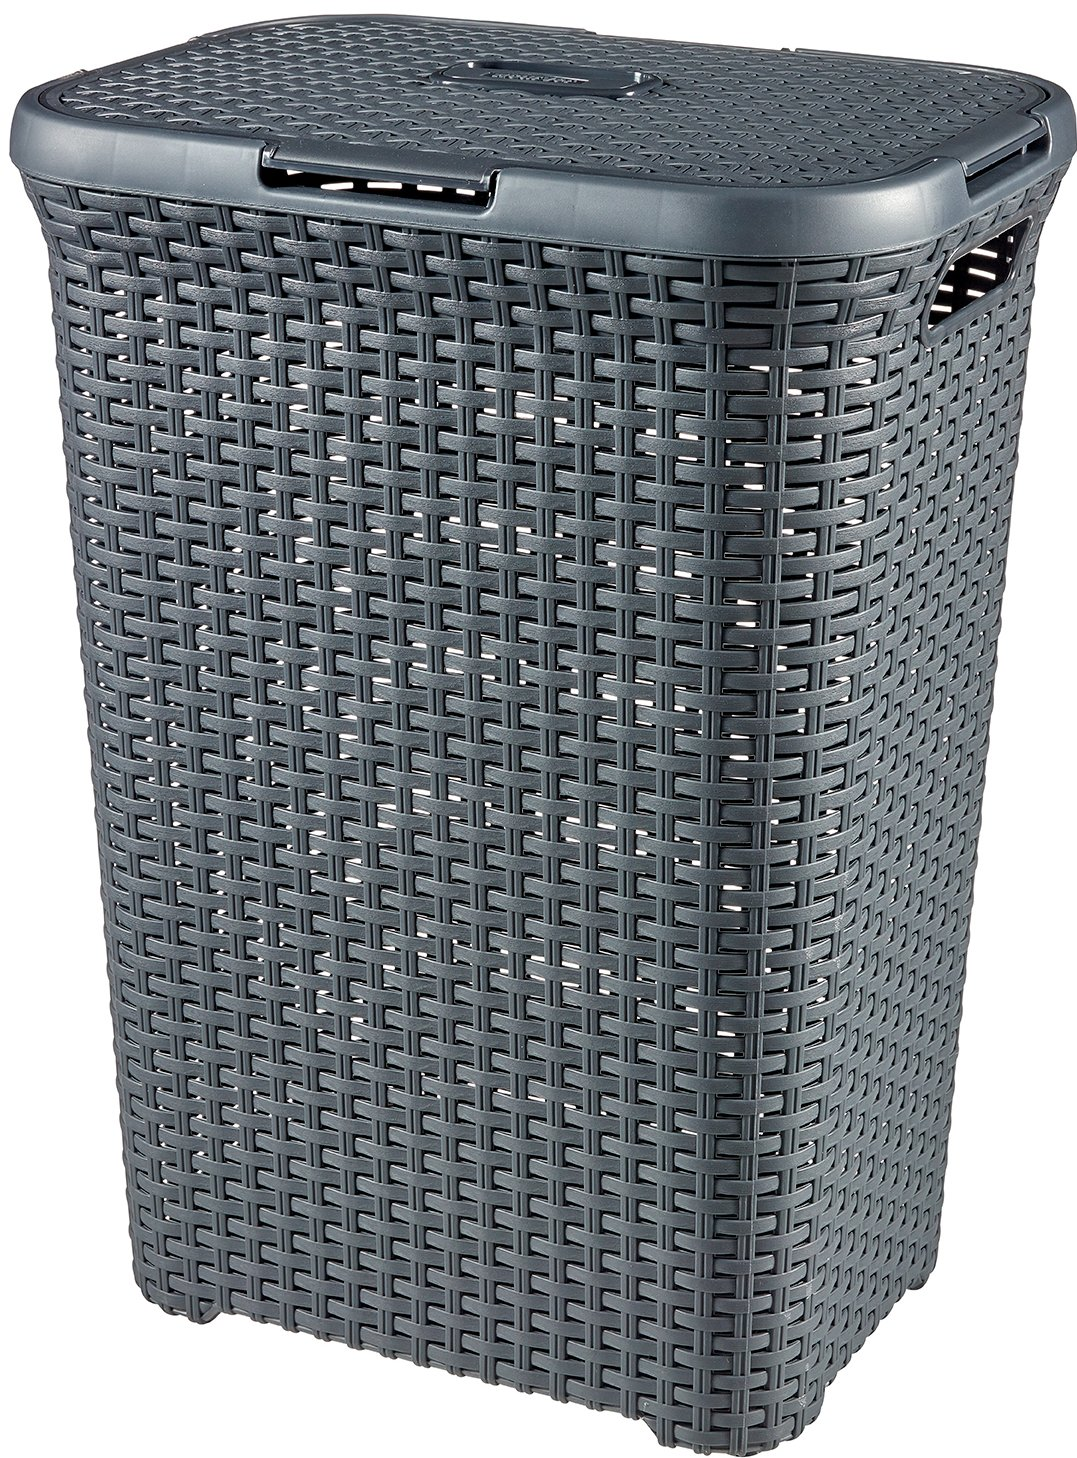 Curver style wasbox 60liter